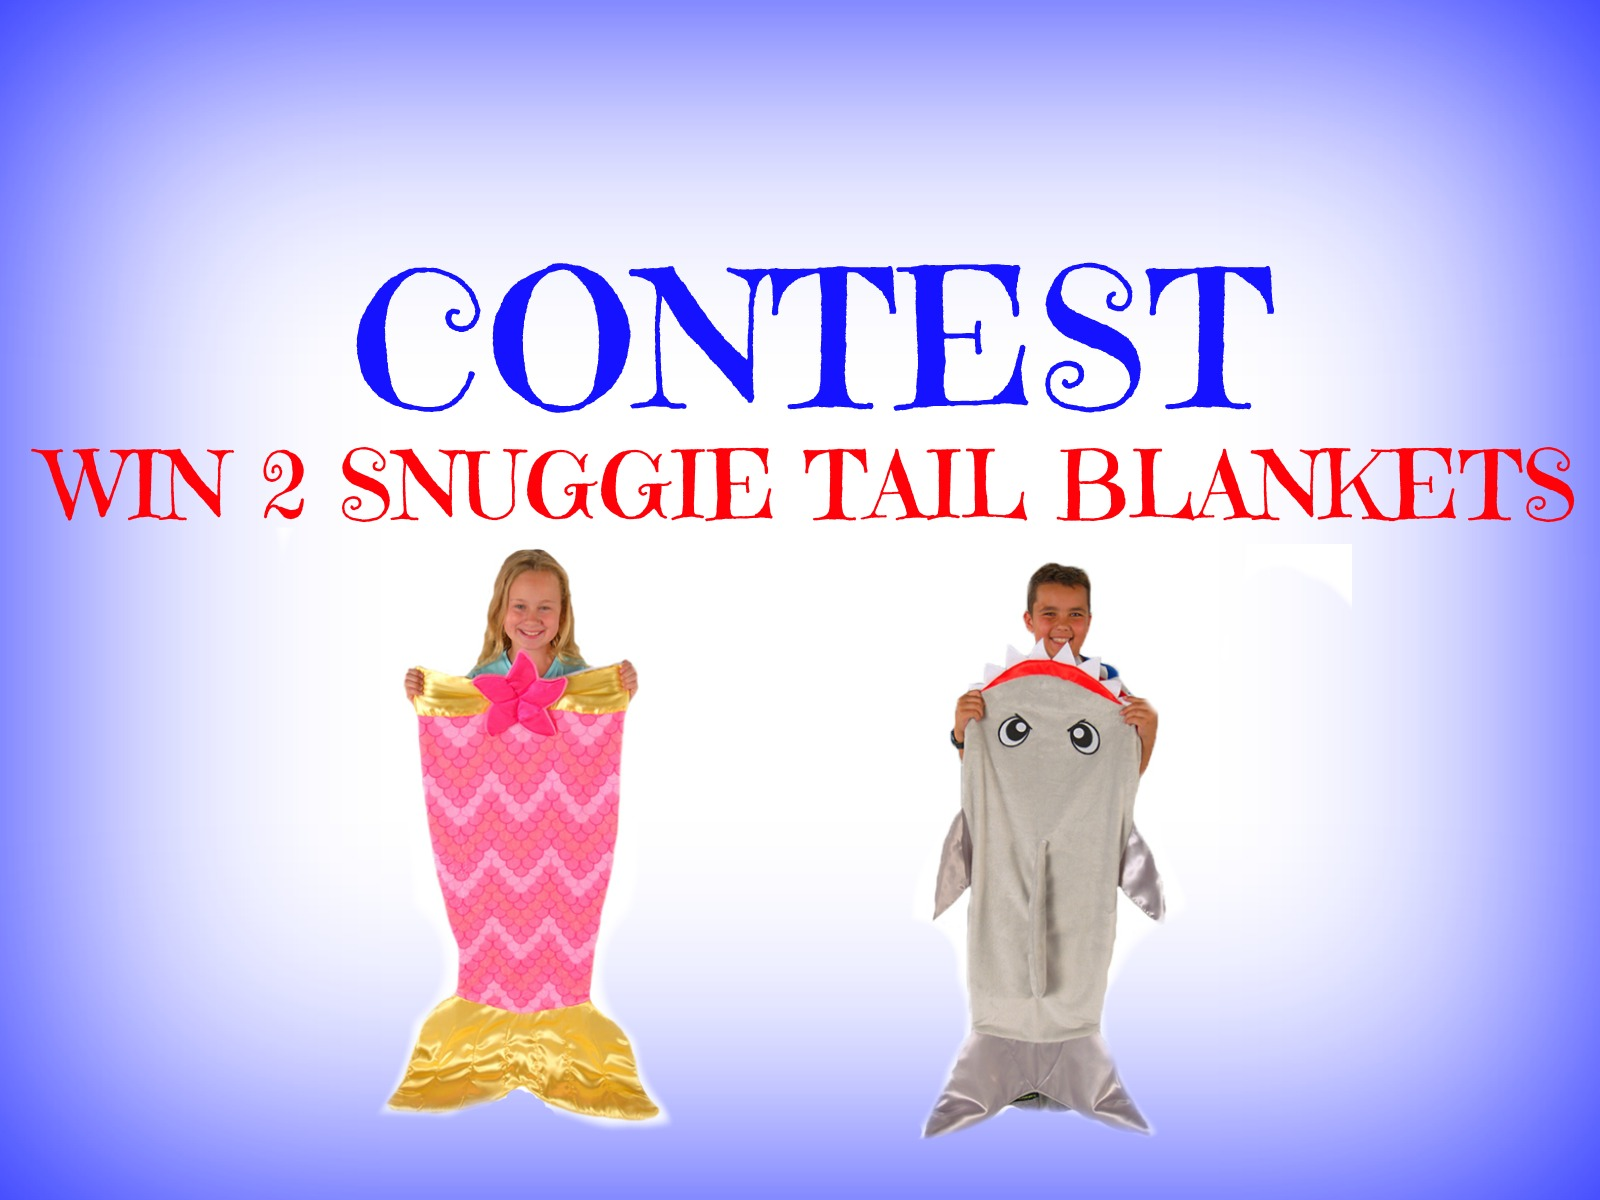 CONTEST: WIN 2 SNUGGIE TAIL BLANKETS